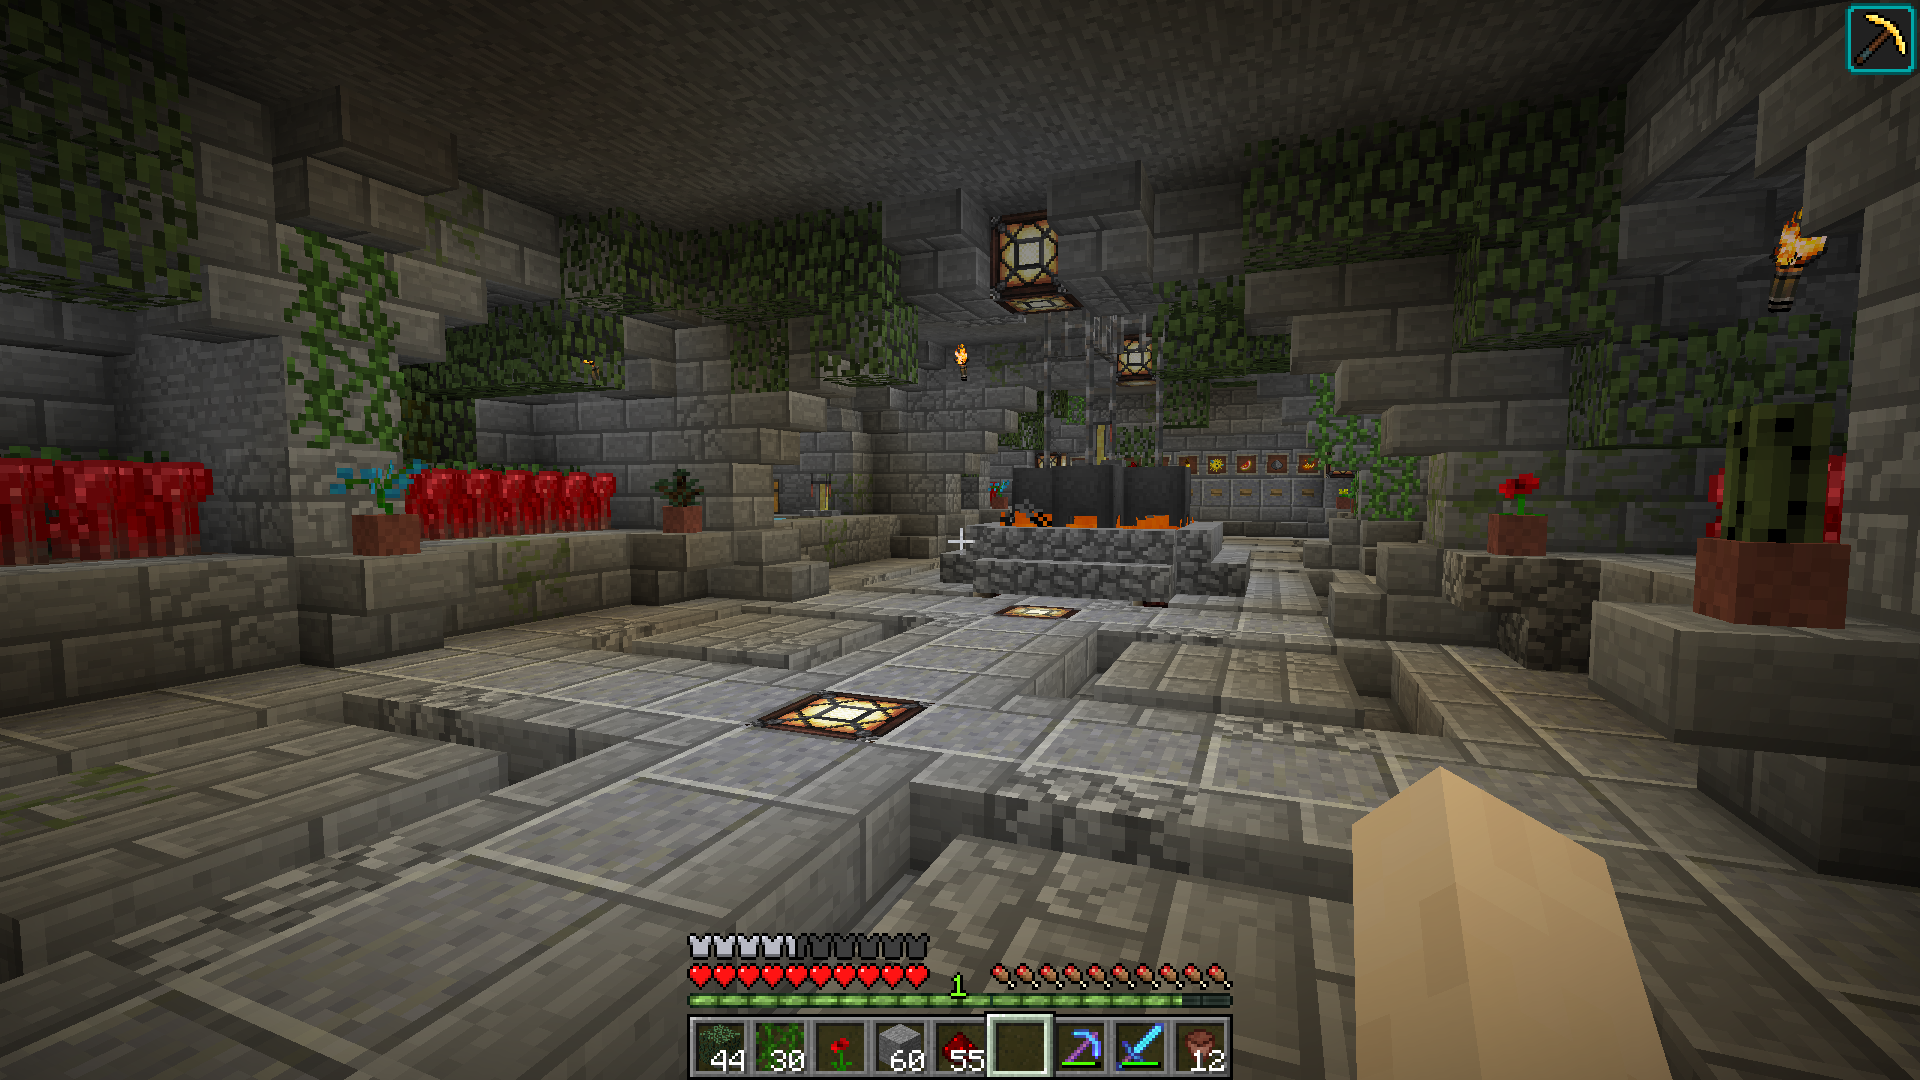 Watcha Think About My Potion Room And What Could I Do To